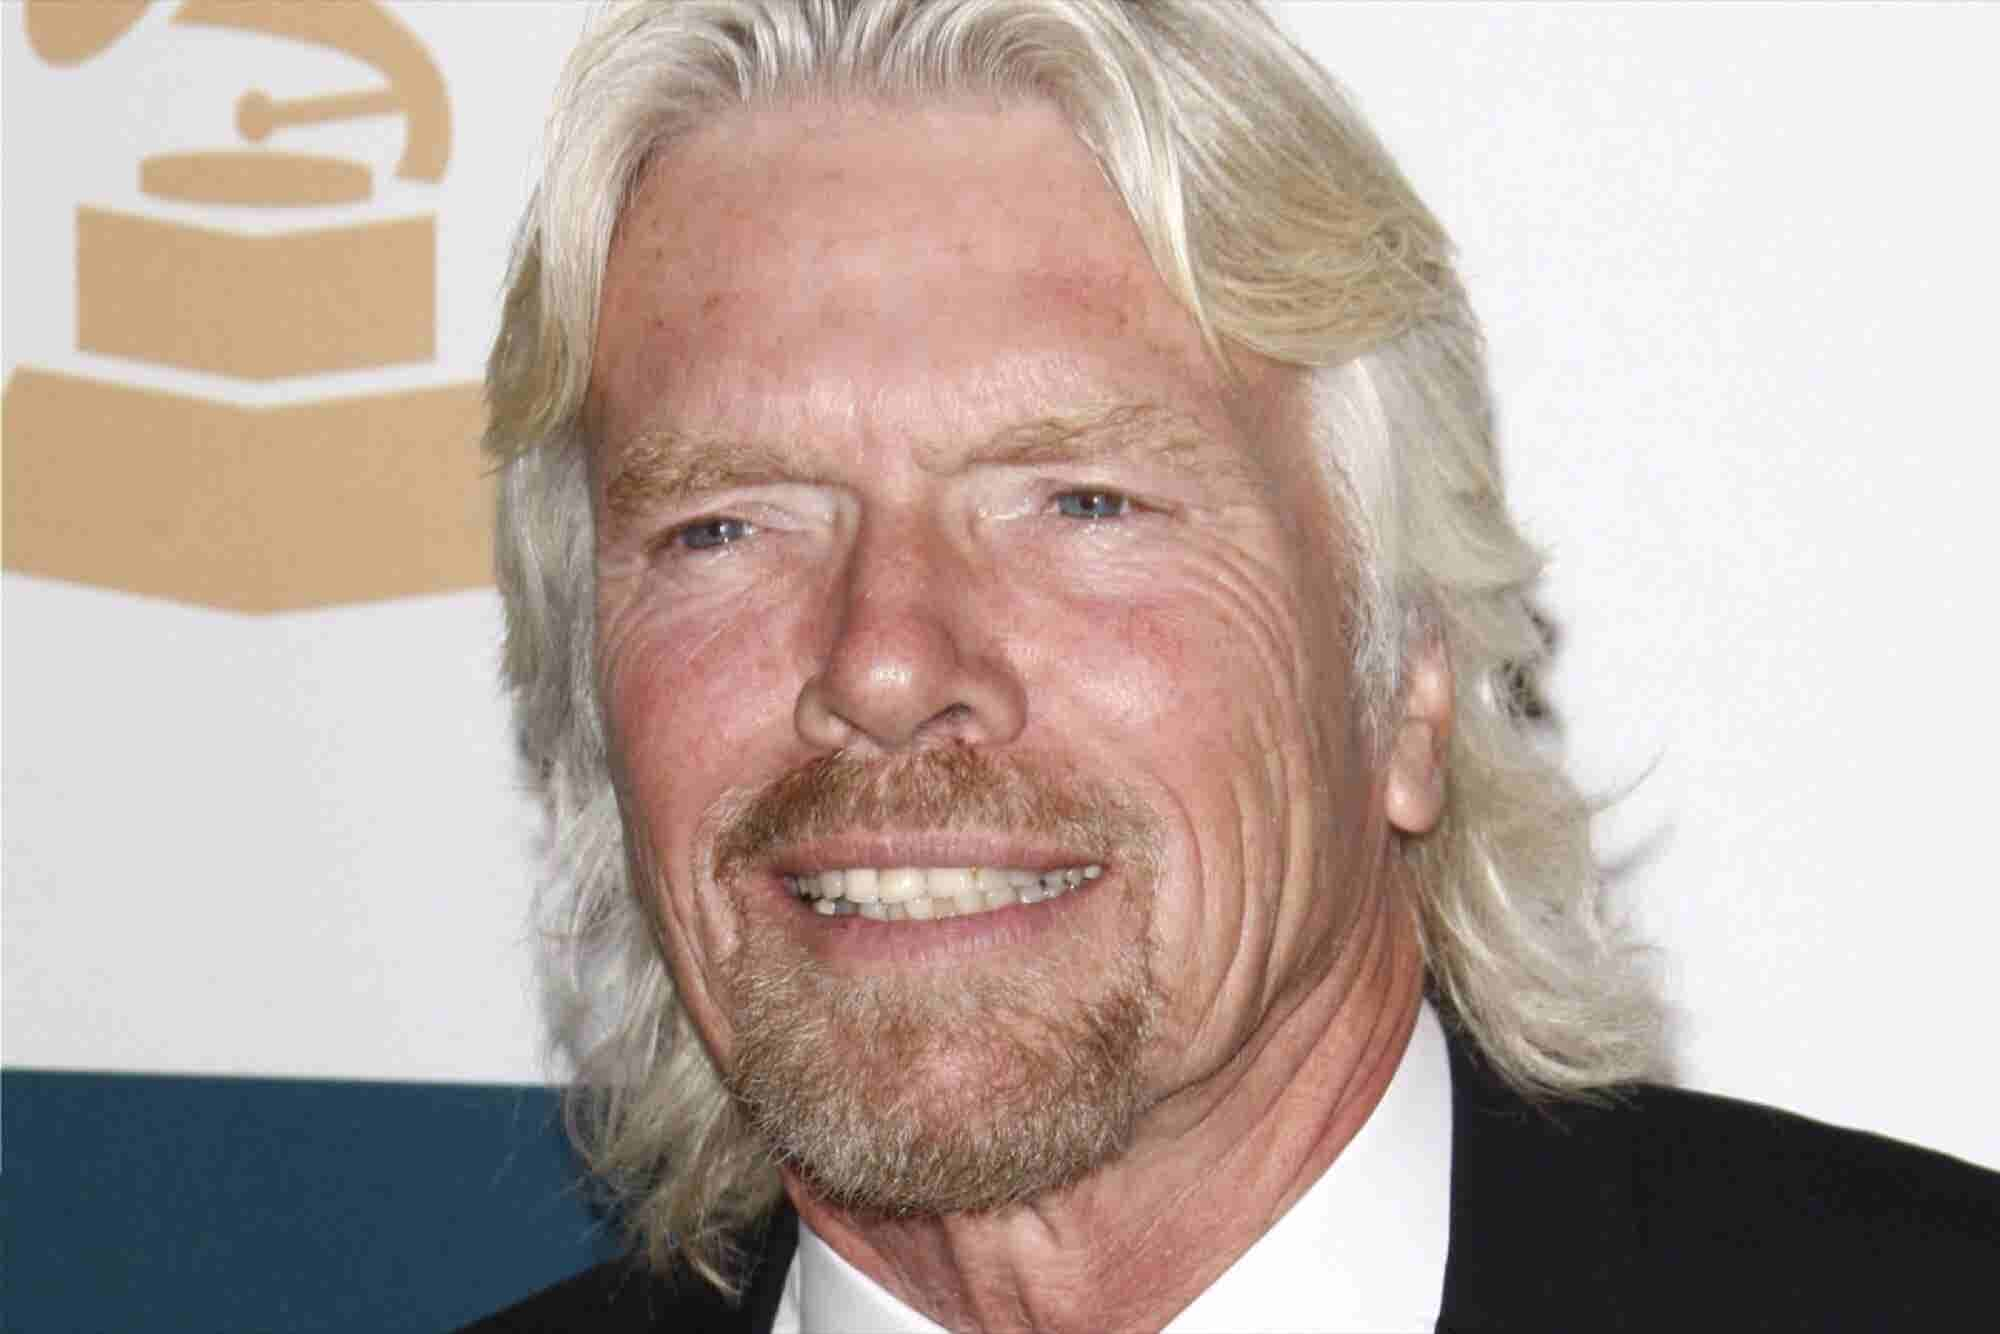 Advice for Uber From Branson, Cuban and Others